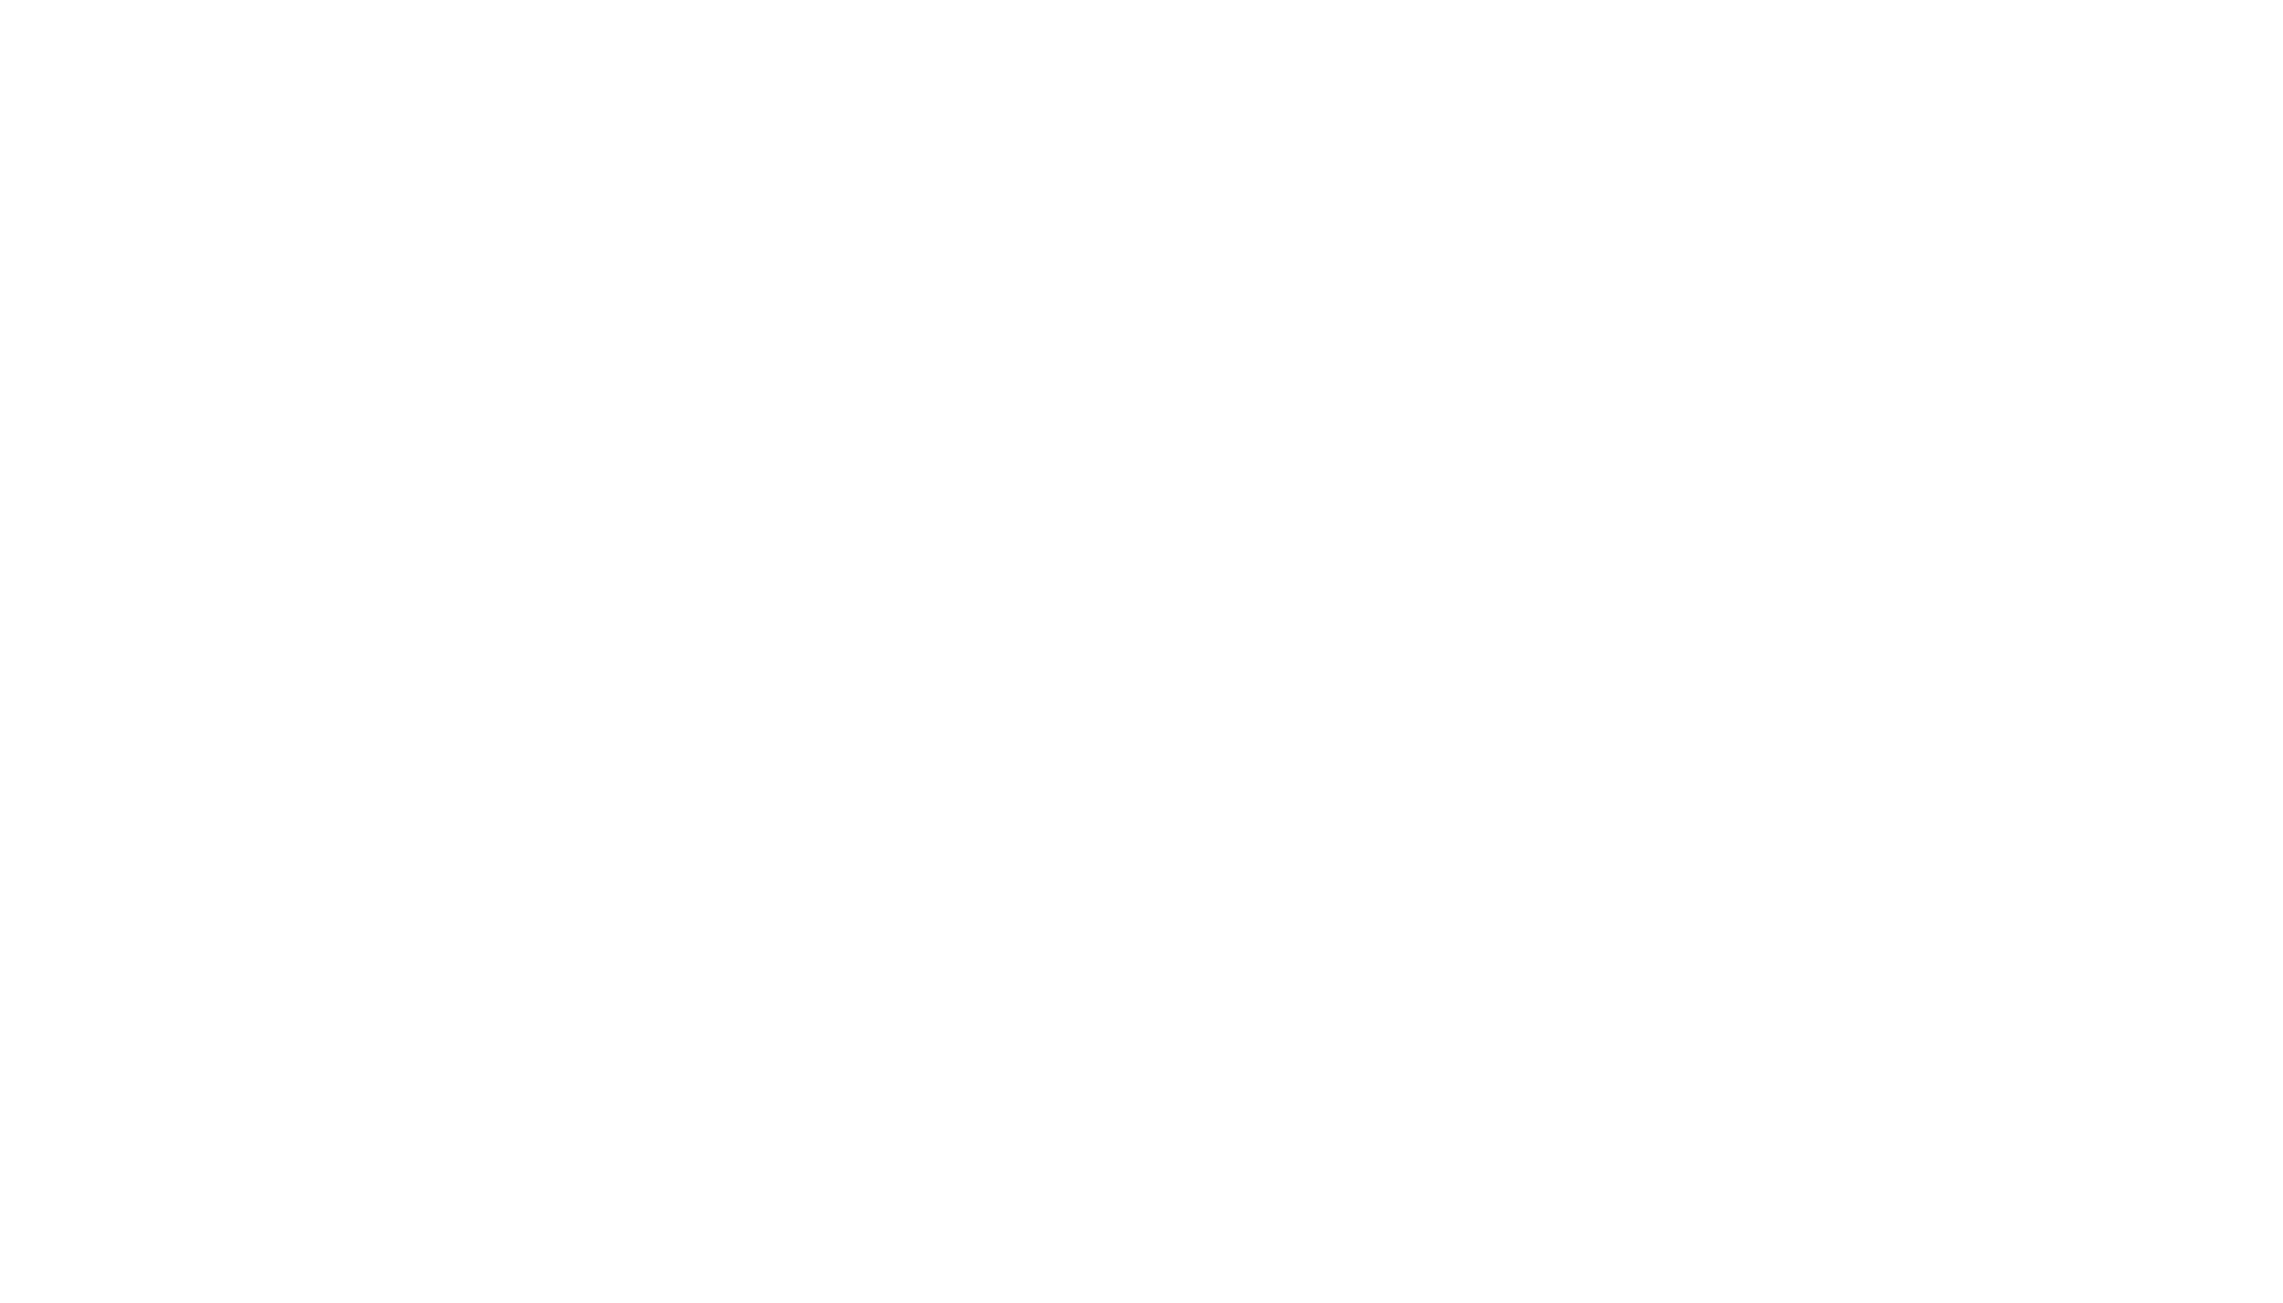 Olay logo in white